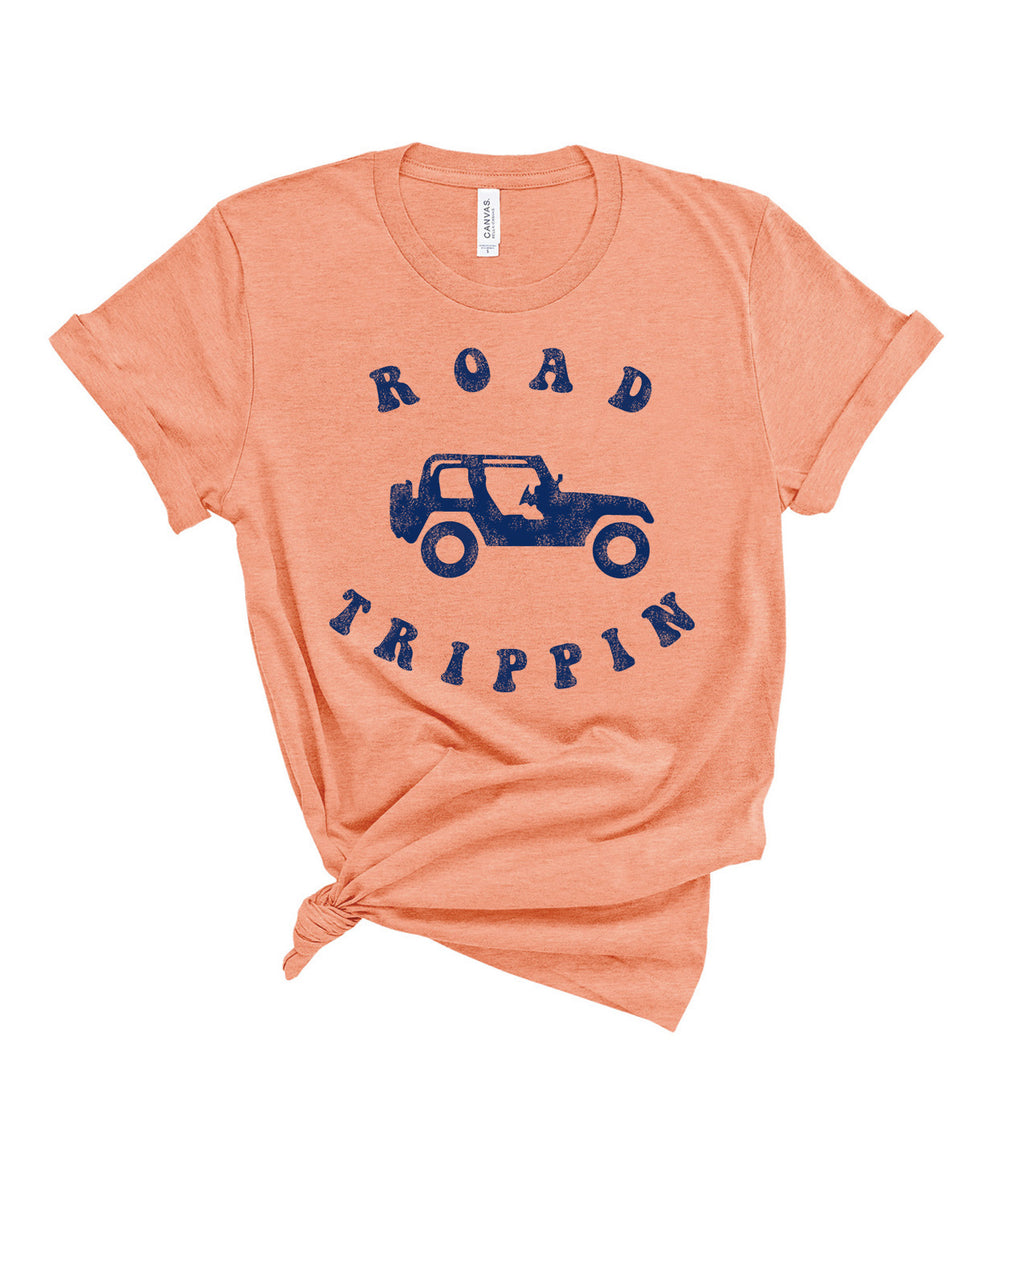 ROAD TRIPPIN JEEP SHIRT